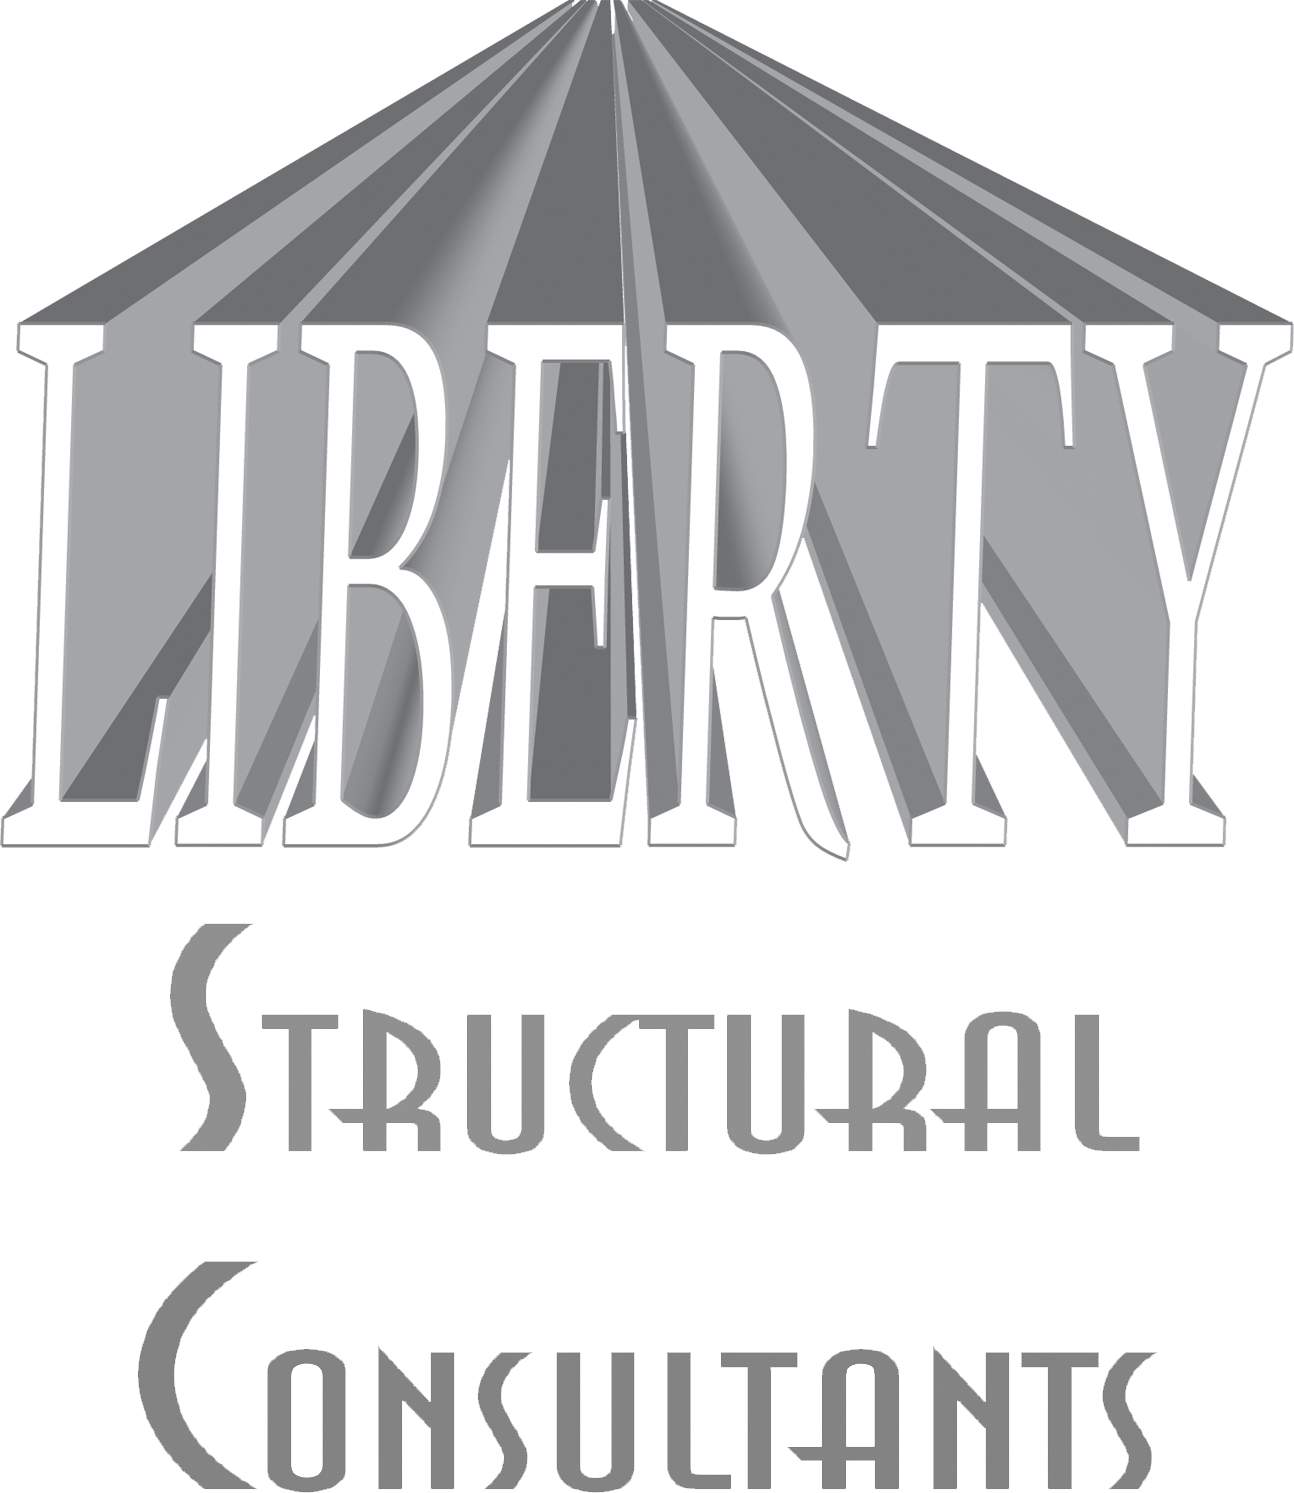 Liberty Structural Consultants